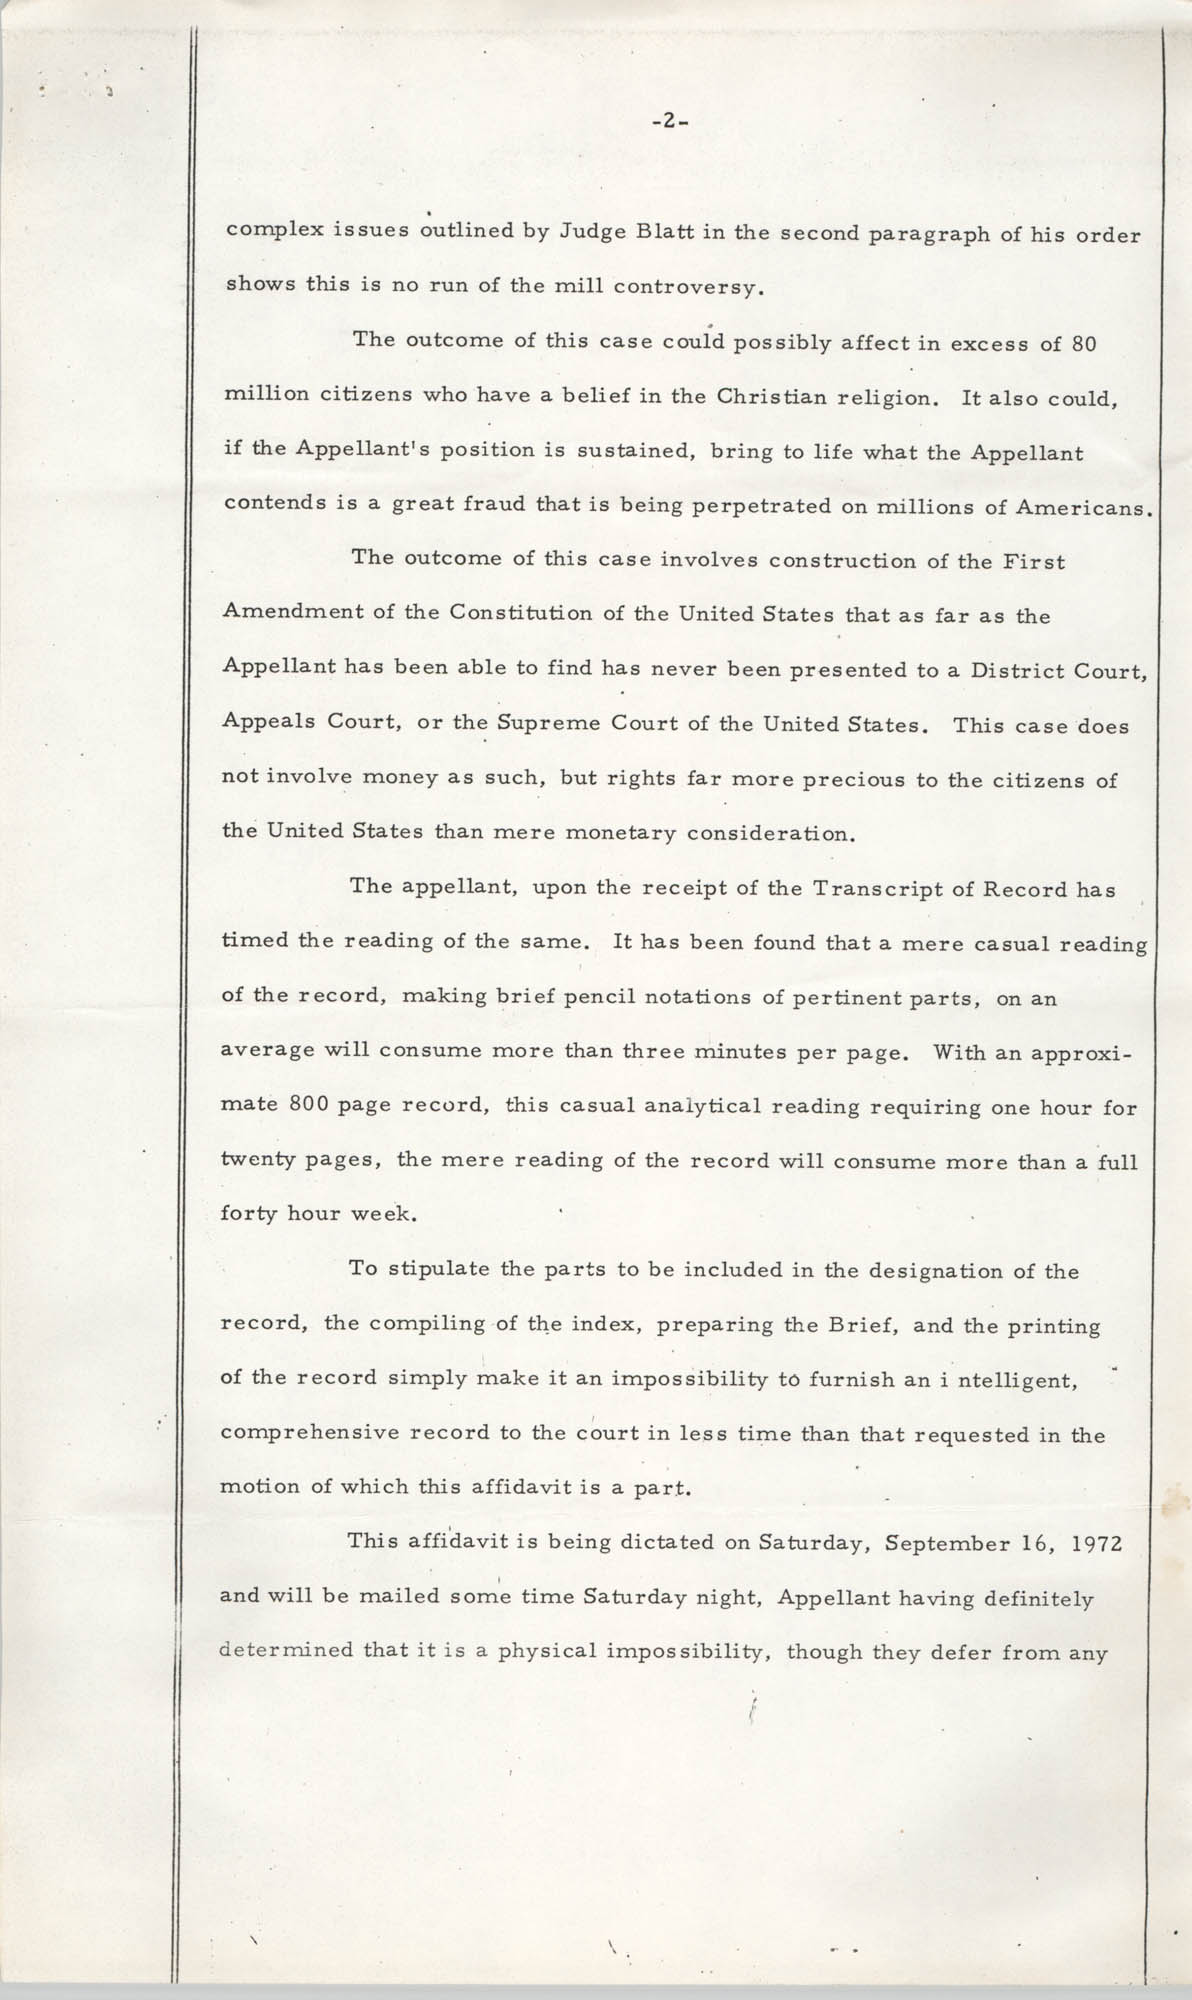 National Board of the Y.W.C.A. of the U.S.A. vs. Y.W.C.A. of Charleston South Carolina, No. 72-1062, Page 2